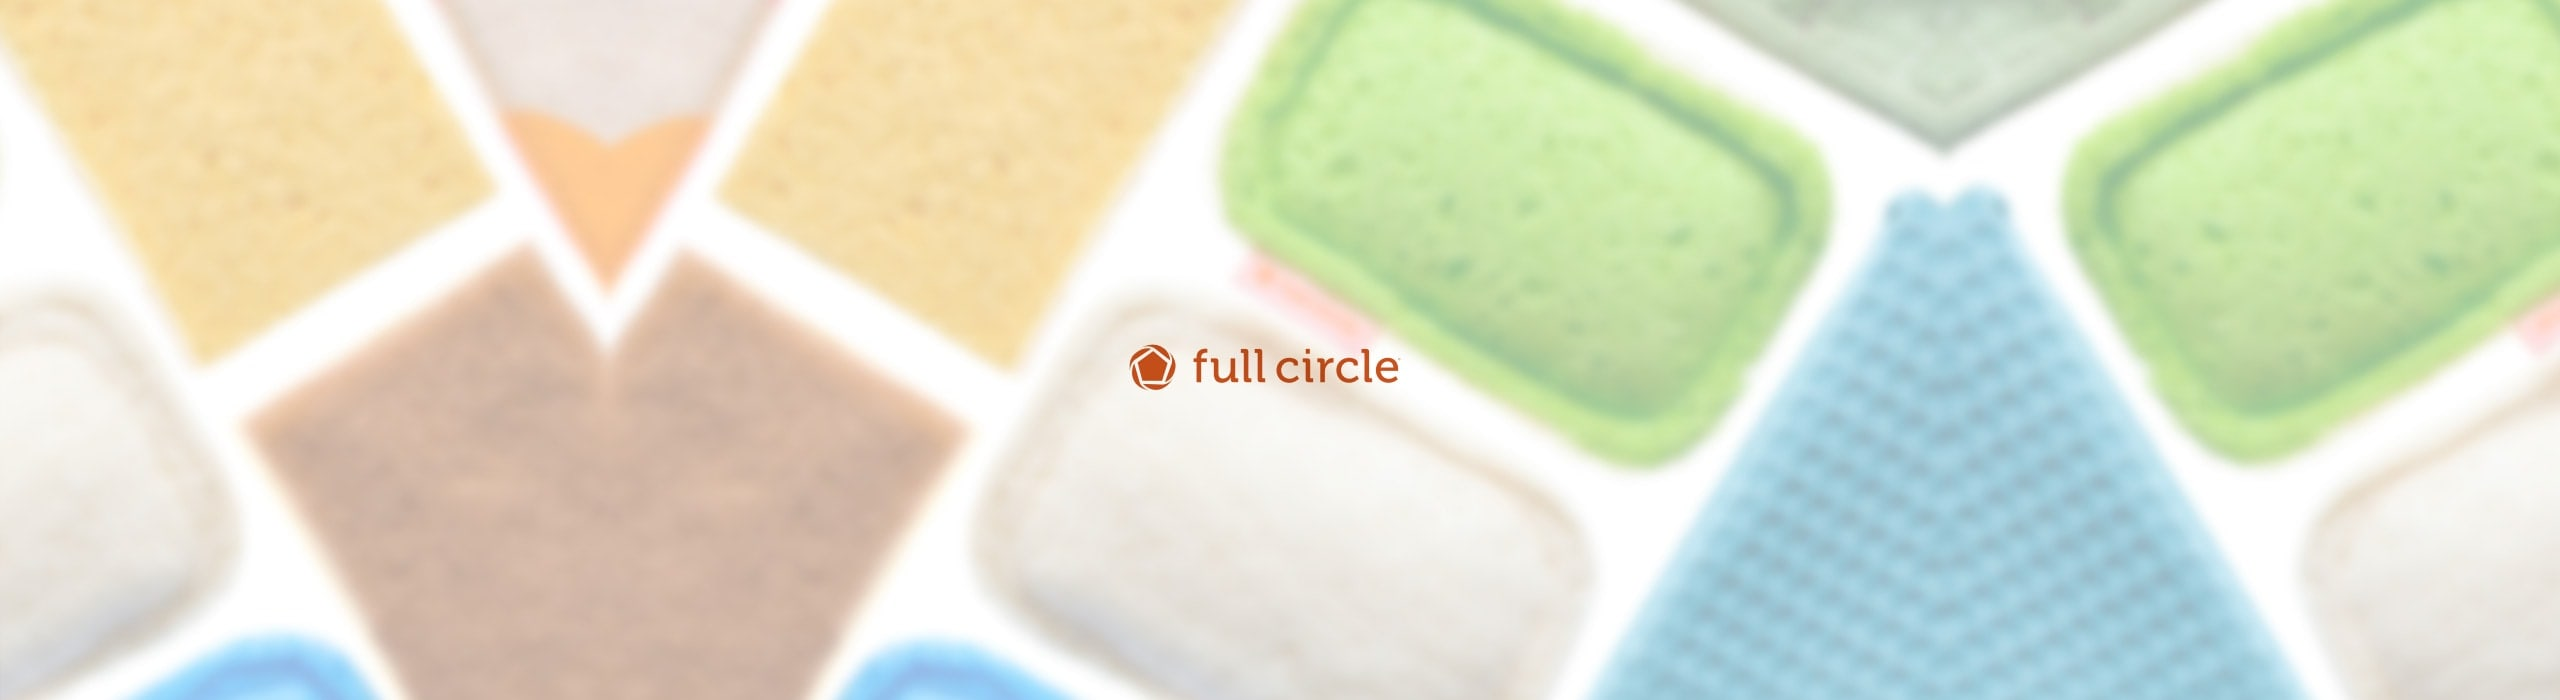 Full Circle - natie-full-circle-logo - Natie Branding Agency